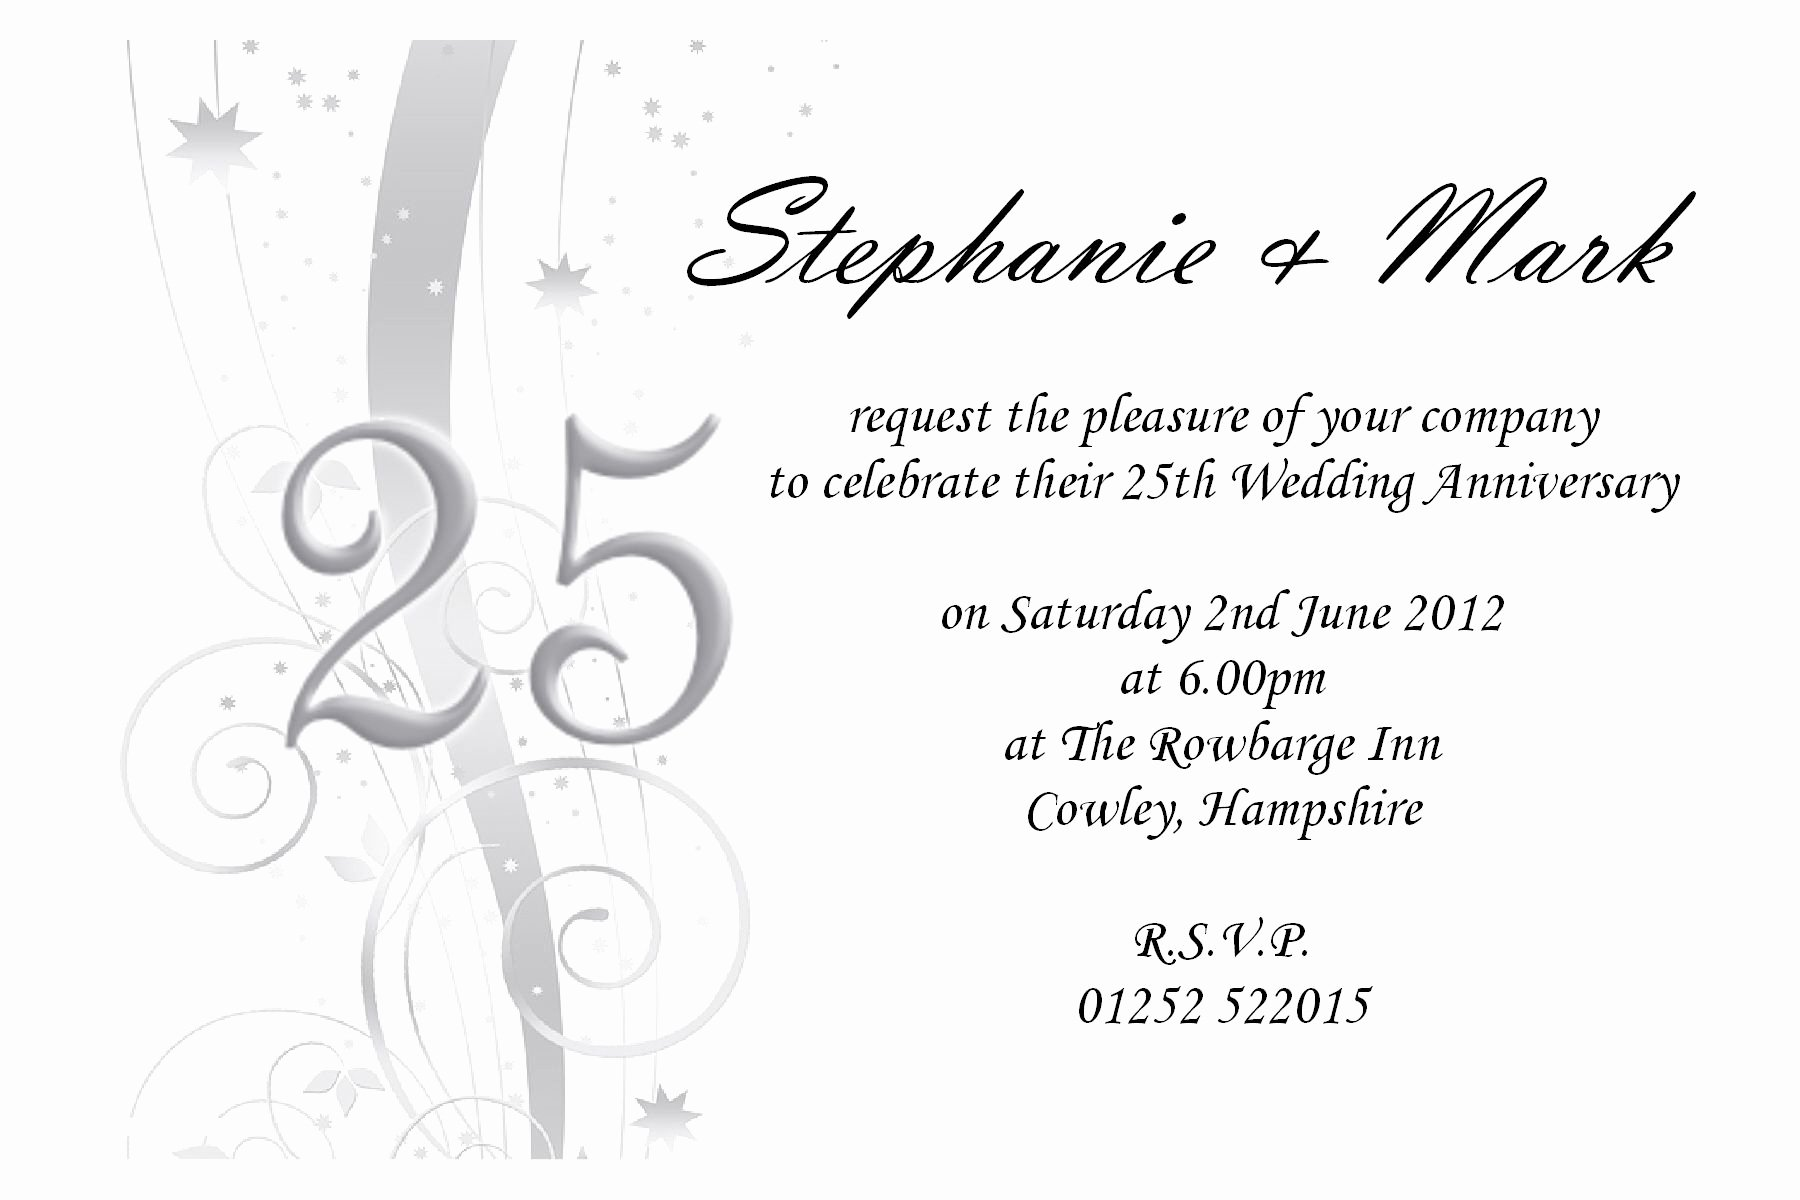 25th Wedding Anniversary Invitations Templates Elegant Free 25th Wedding Anniversary Invitations Free Online